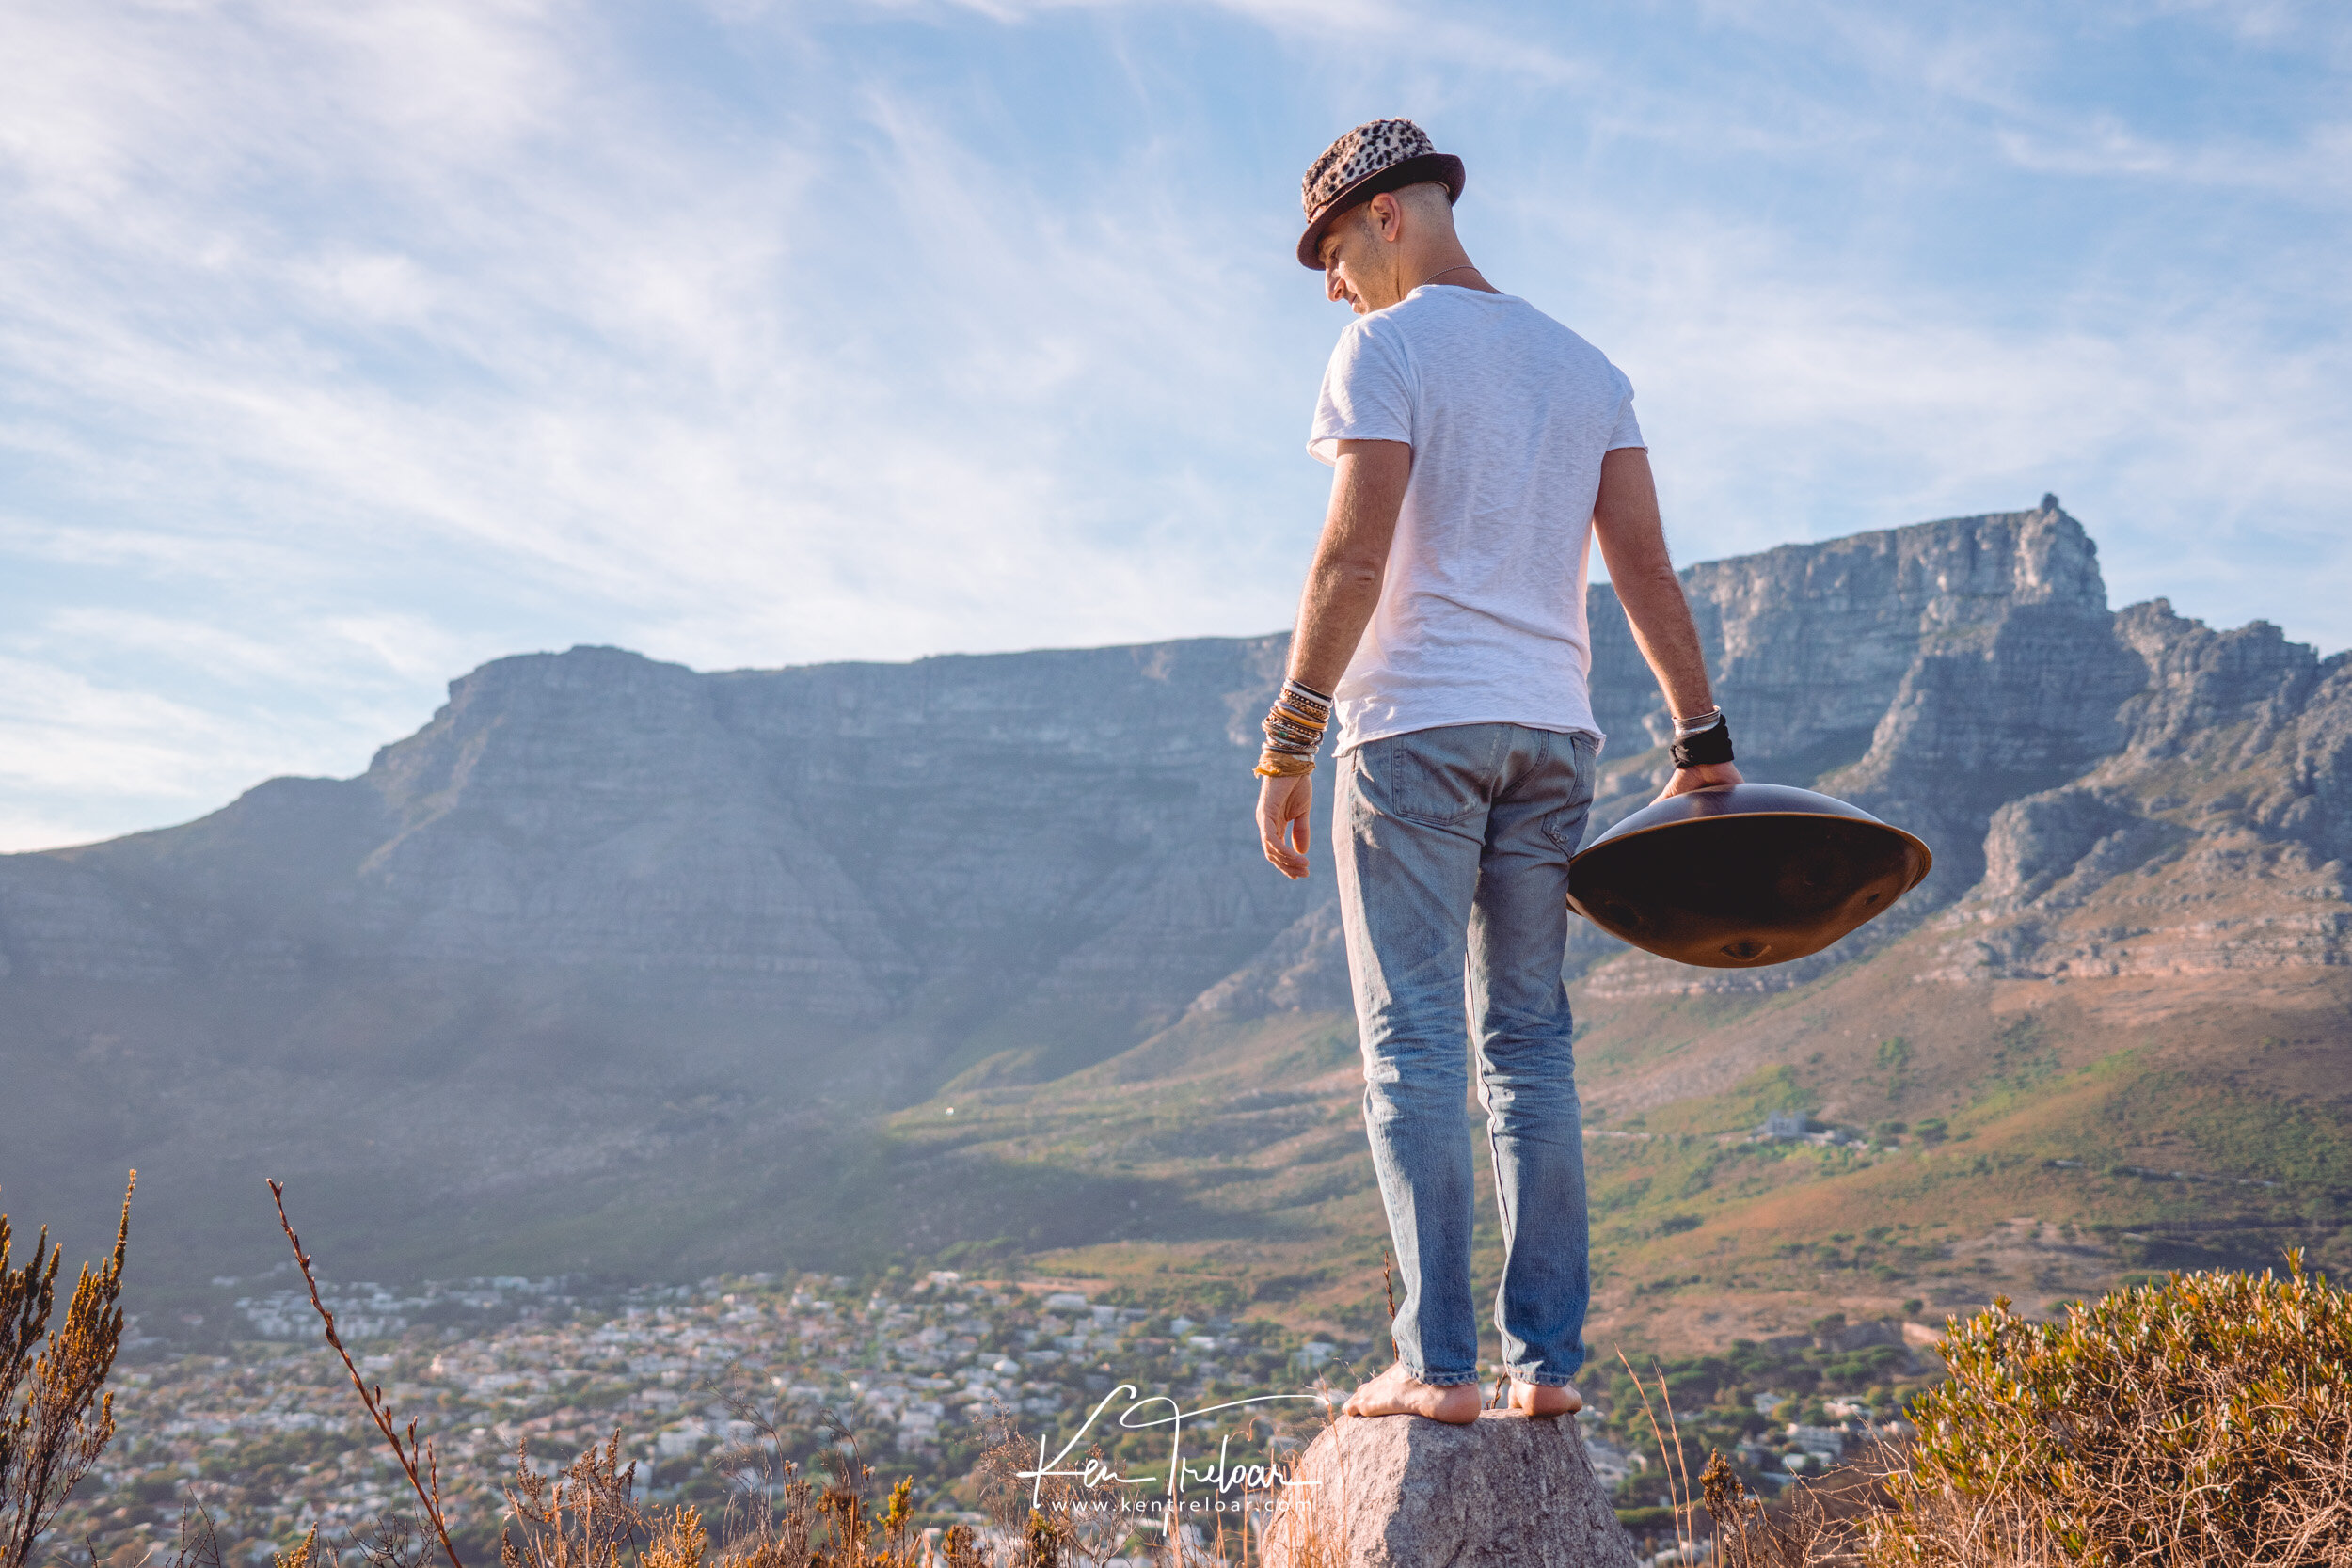 Marco Selvaggio - Signal Hill, Lions head, Table Mountain, Cape Town South Africa - Image by Ken Treloar Photography 2019-9.jpg